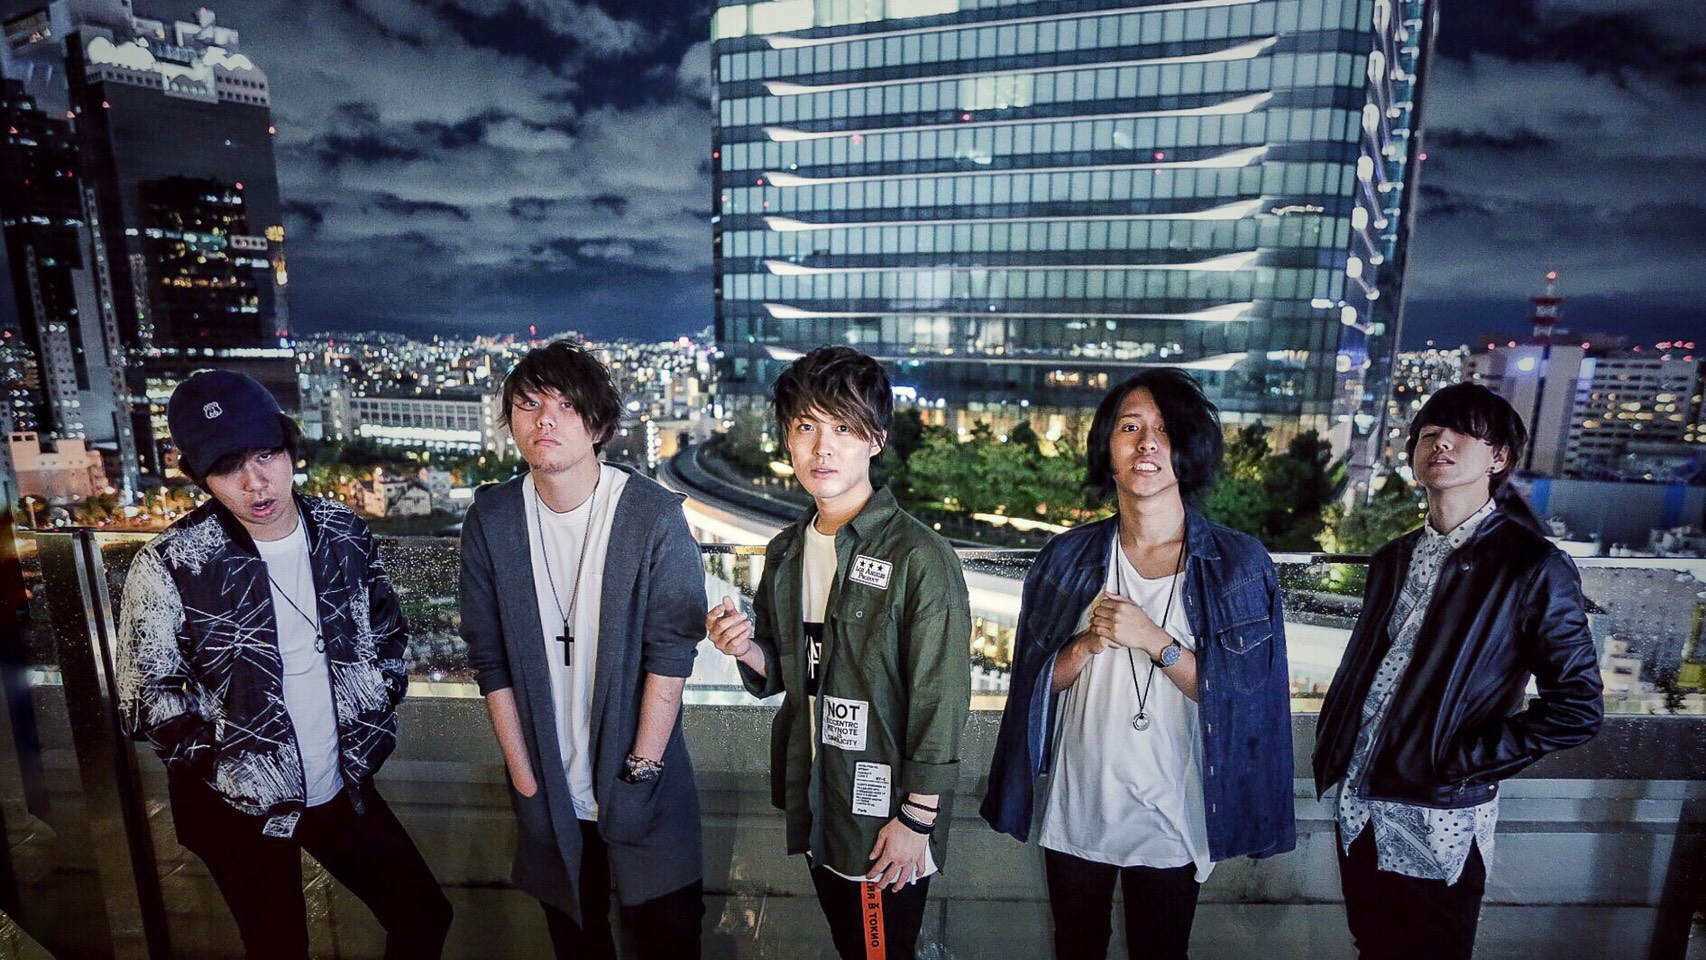 LAW OF LIBERTY 復活ライブ 〜2nd Single『The Lights』Release Party〜